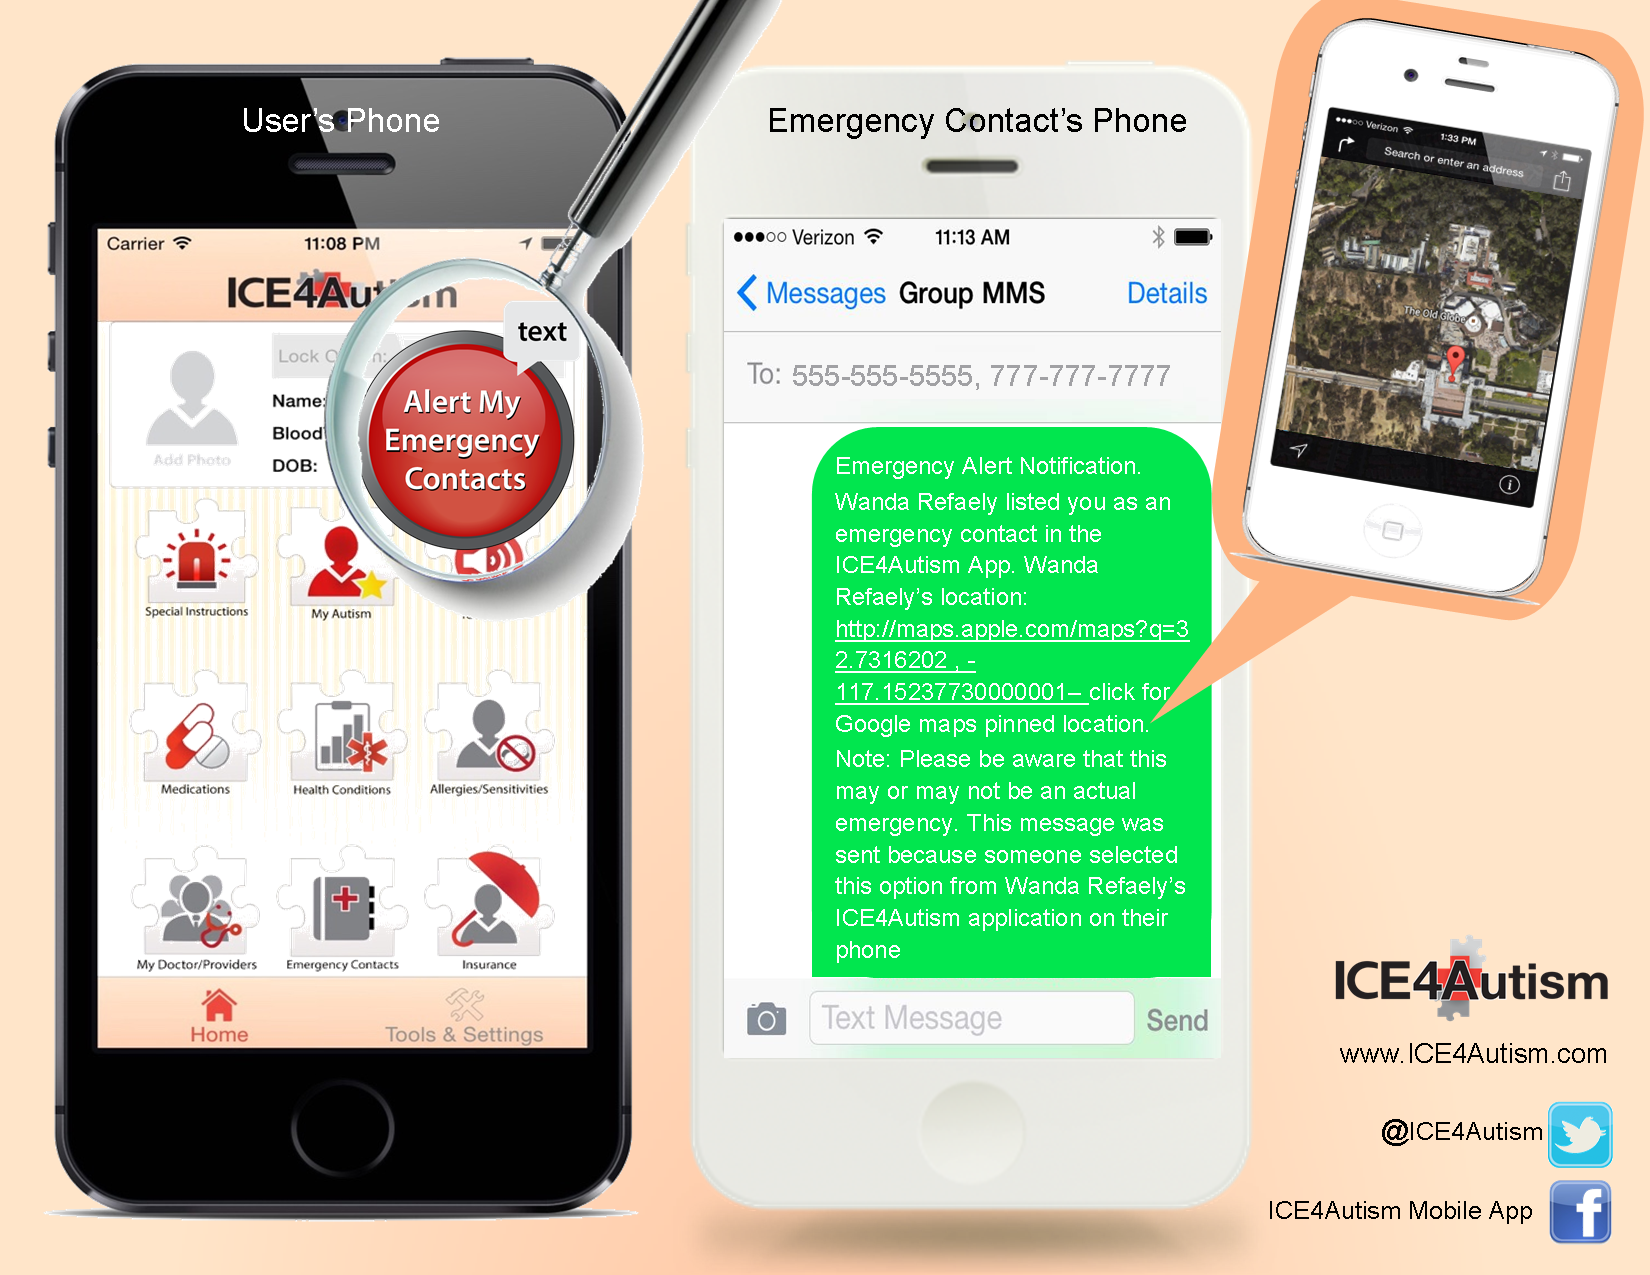 Interview – #ICE4Autism mobile app helps individuals with autism during emergency situations